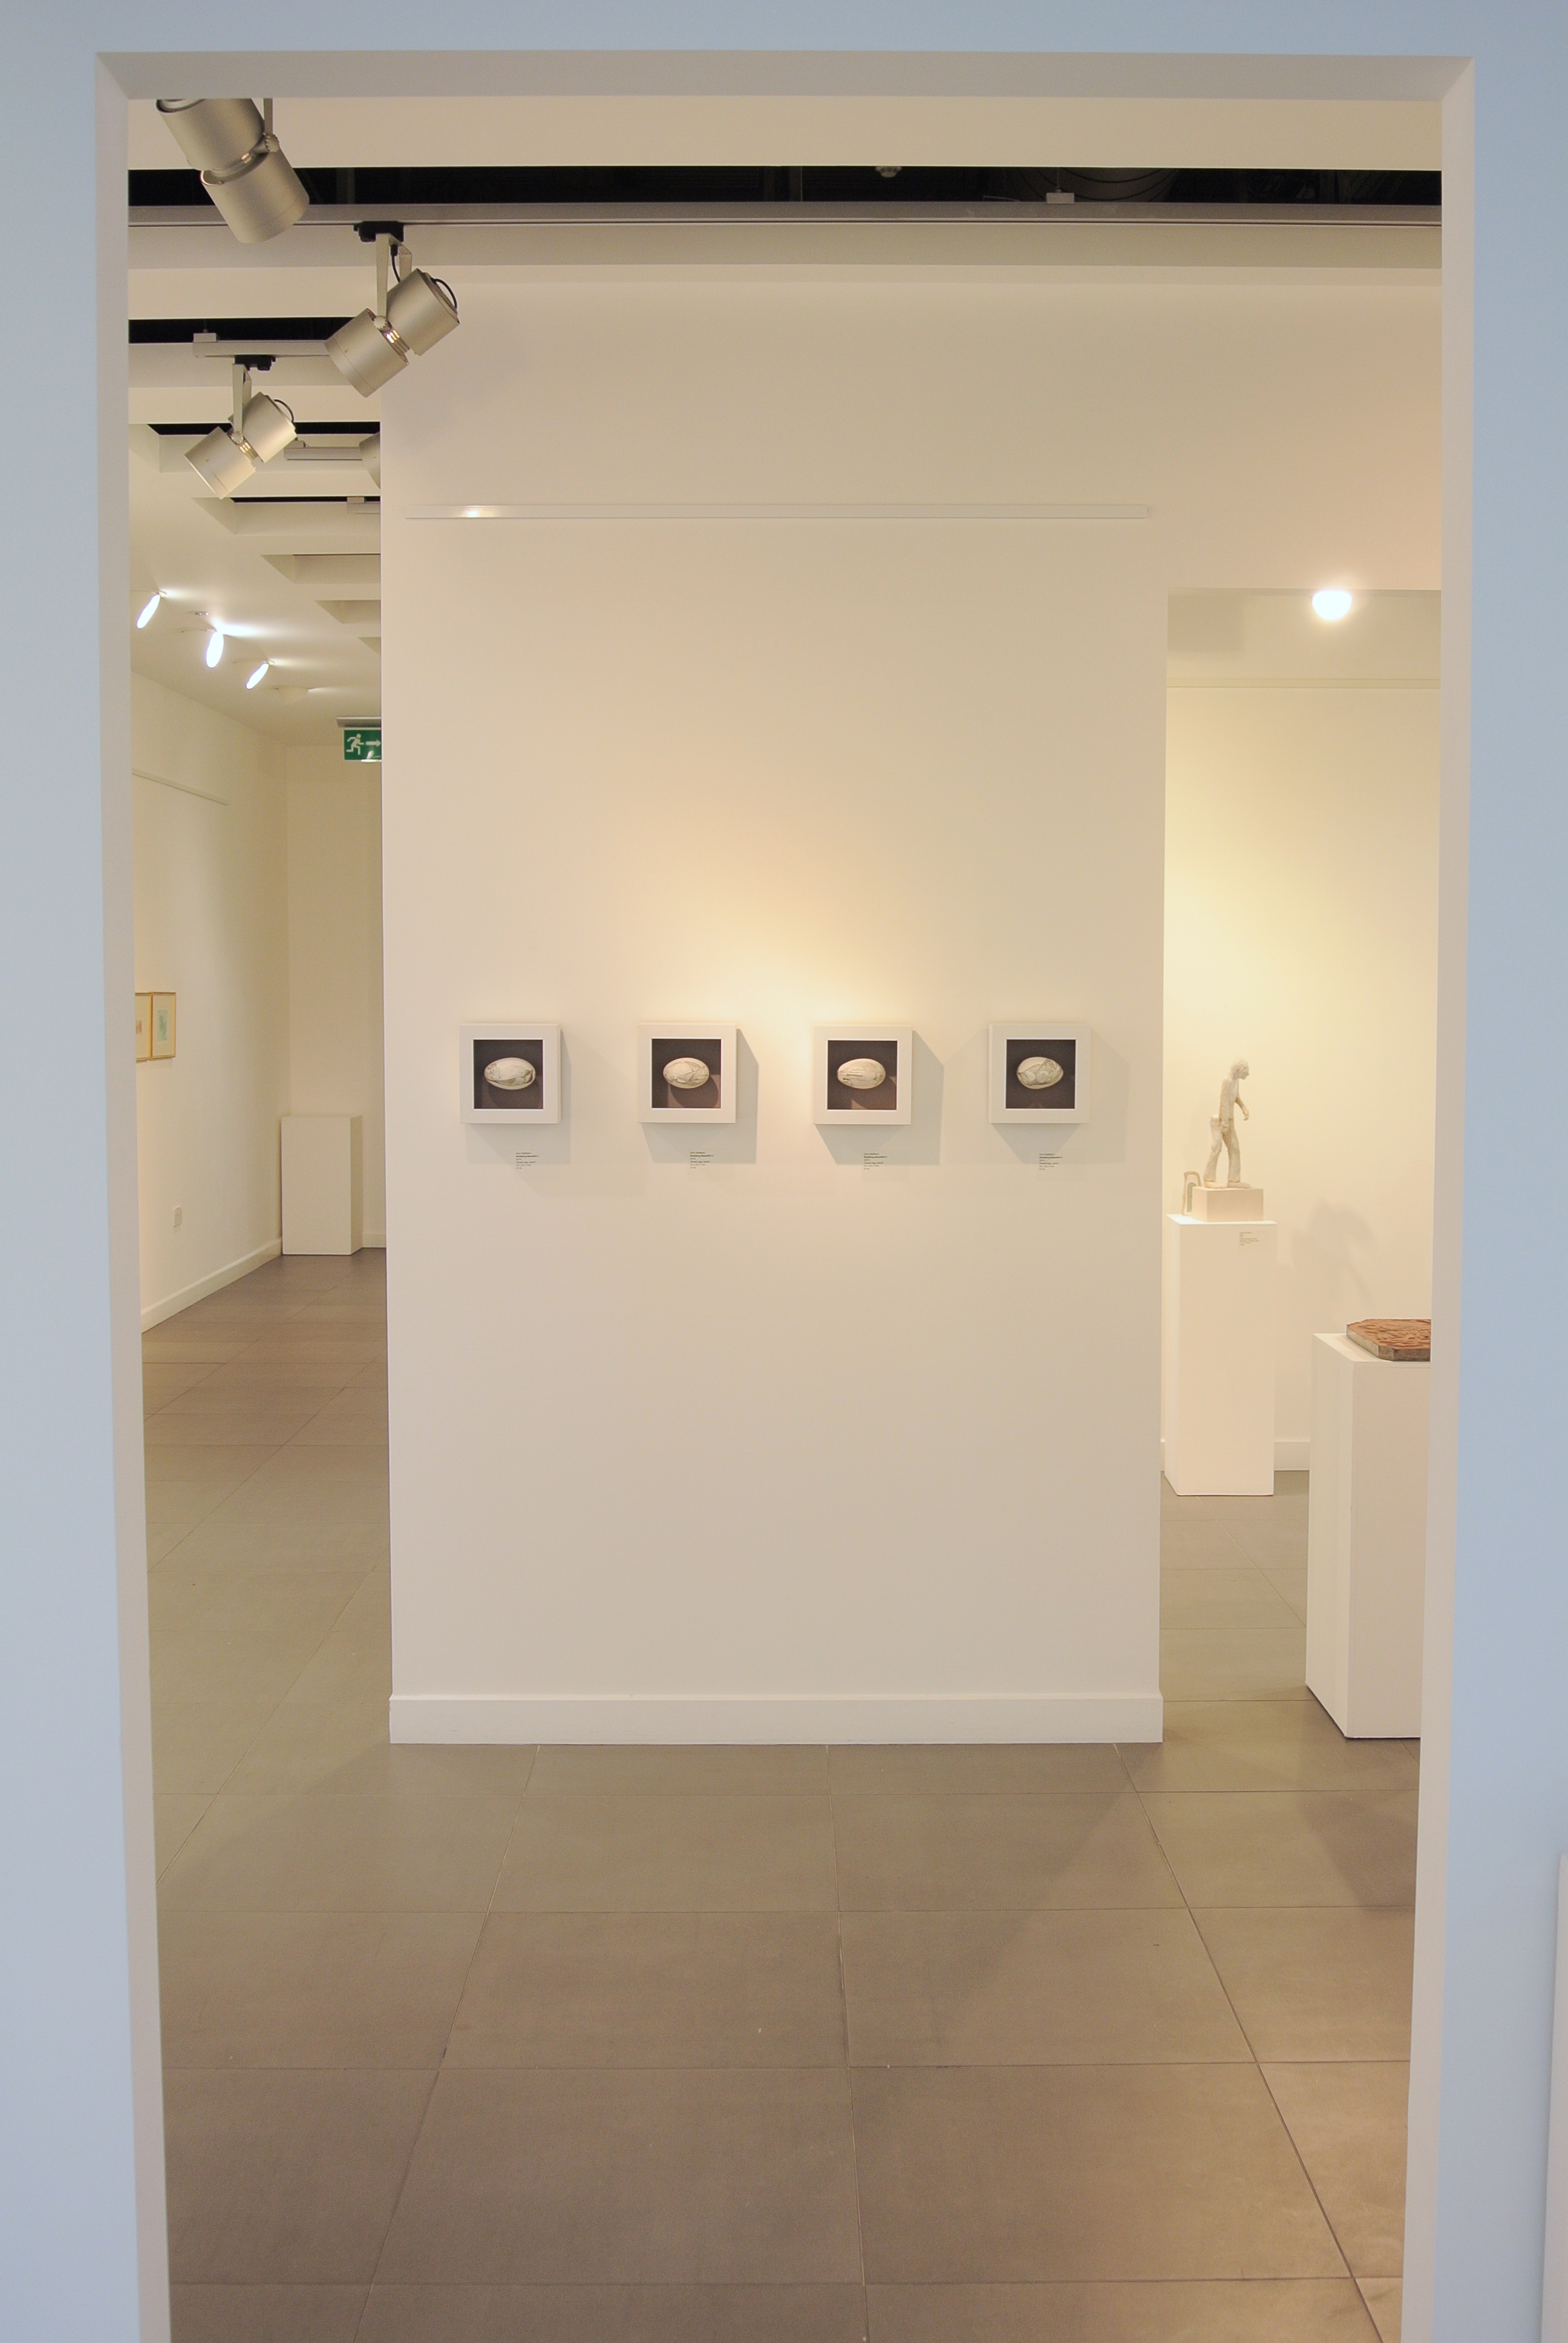 Breaking Beautiful series, by Amy Nettleton, image of her series in the Shape Gallery